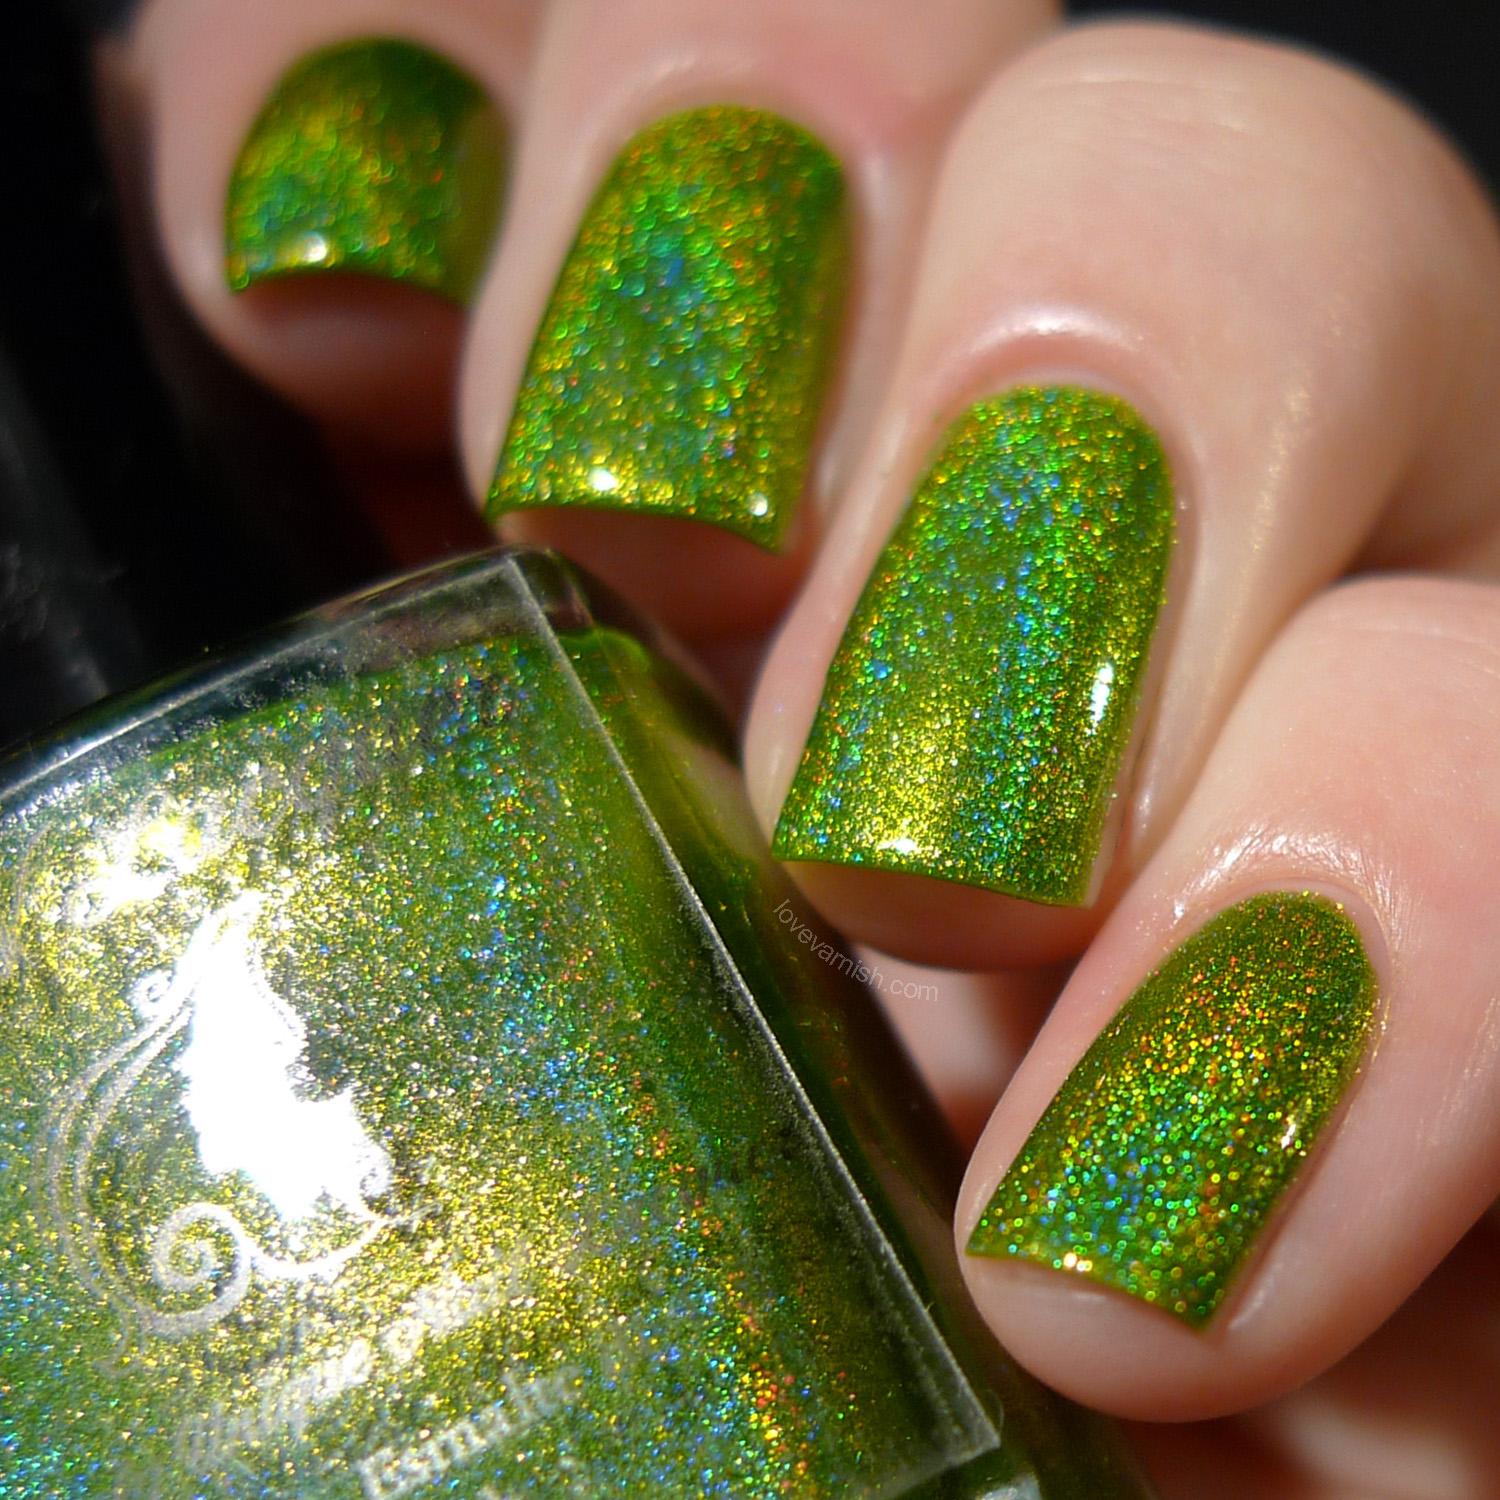 F.U.N Lacquer Summer 2014 Mowed Meadow holographic